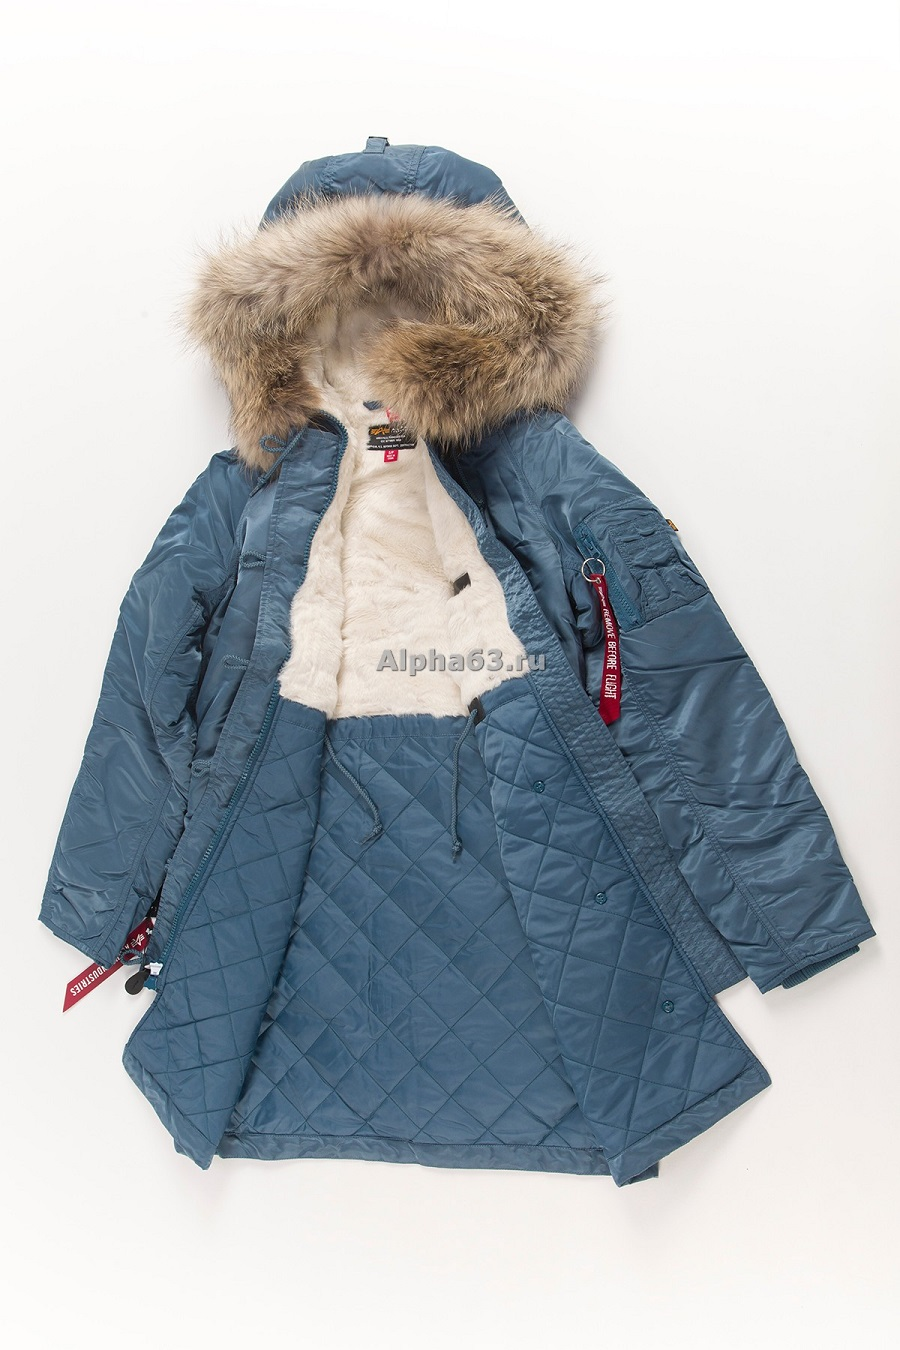 Женская куртка Elyse air force blue\ Nat.Fur